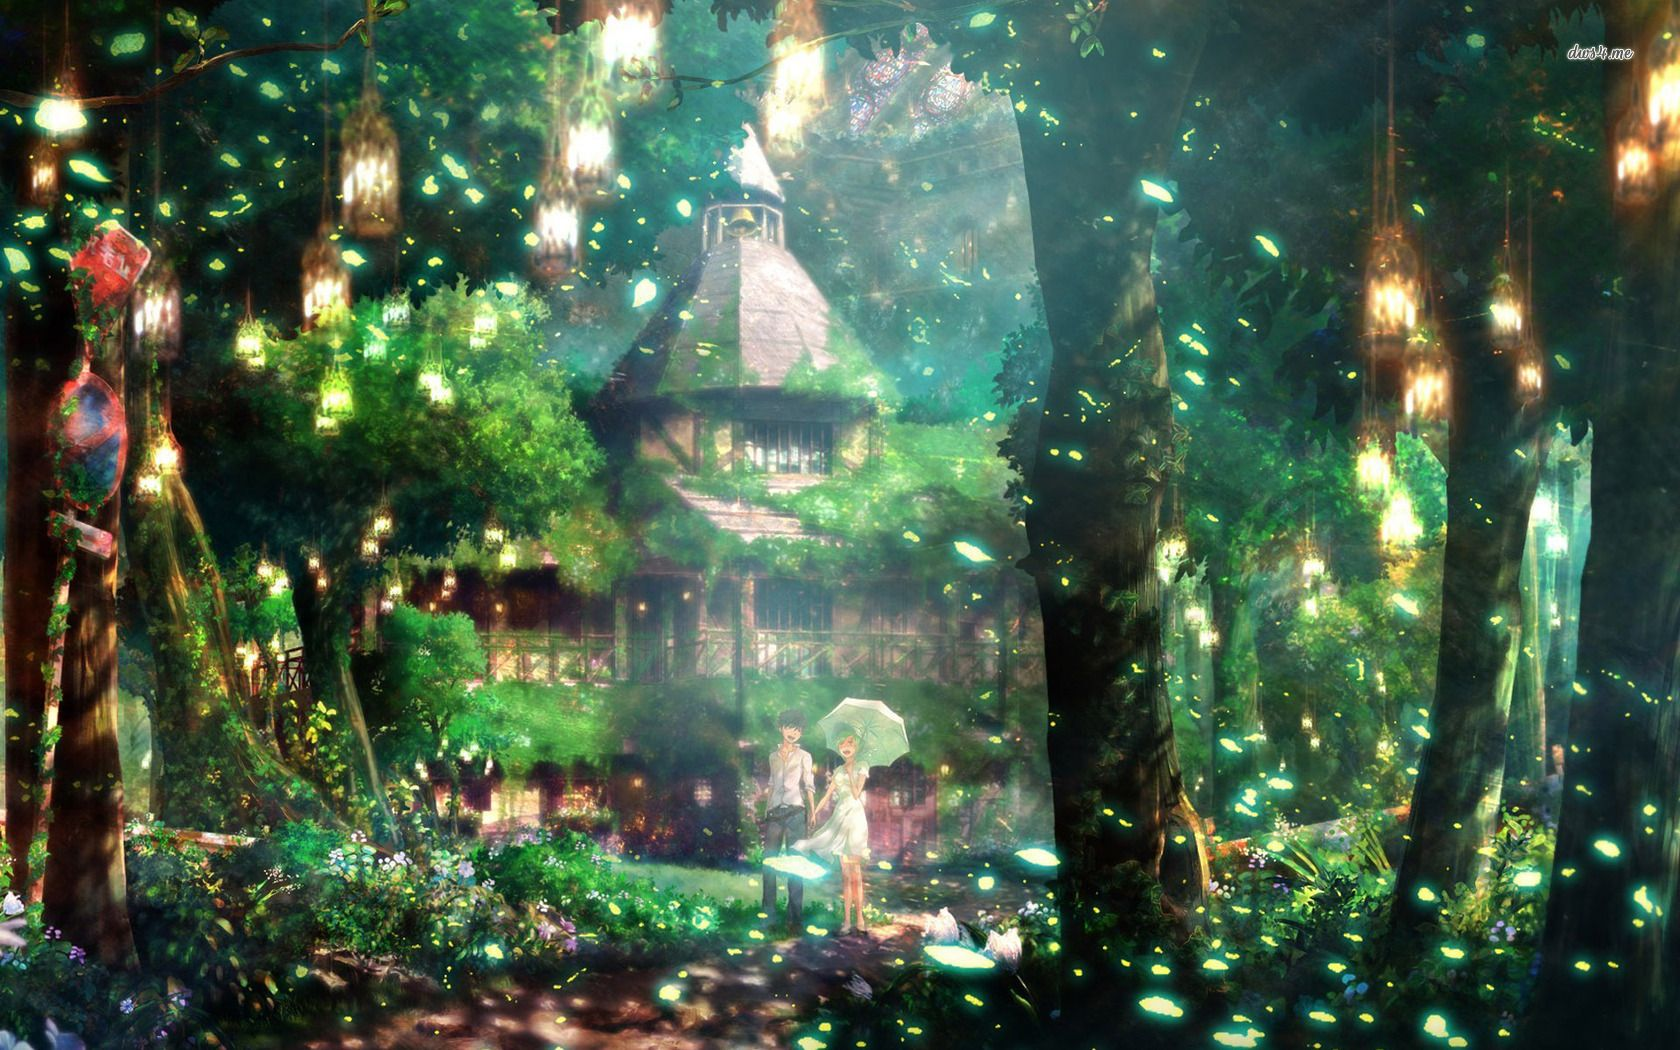 Couple In Magical Forest Animated Scenery Art